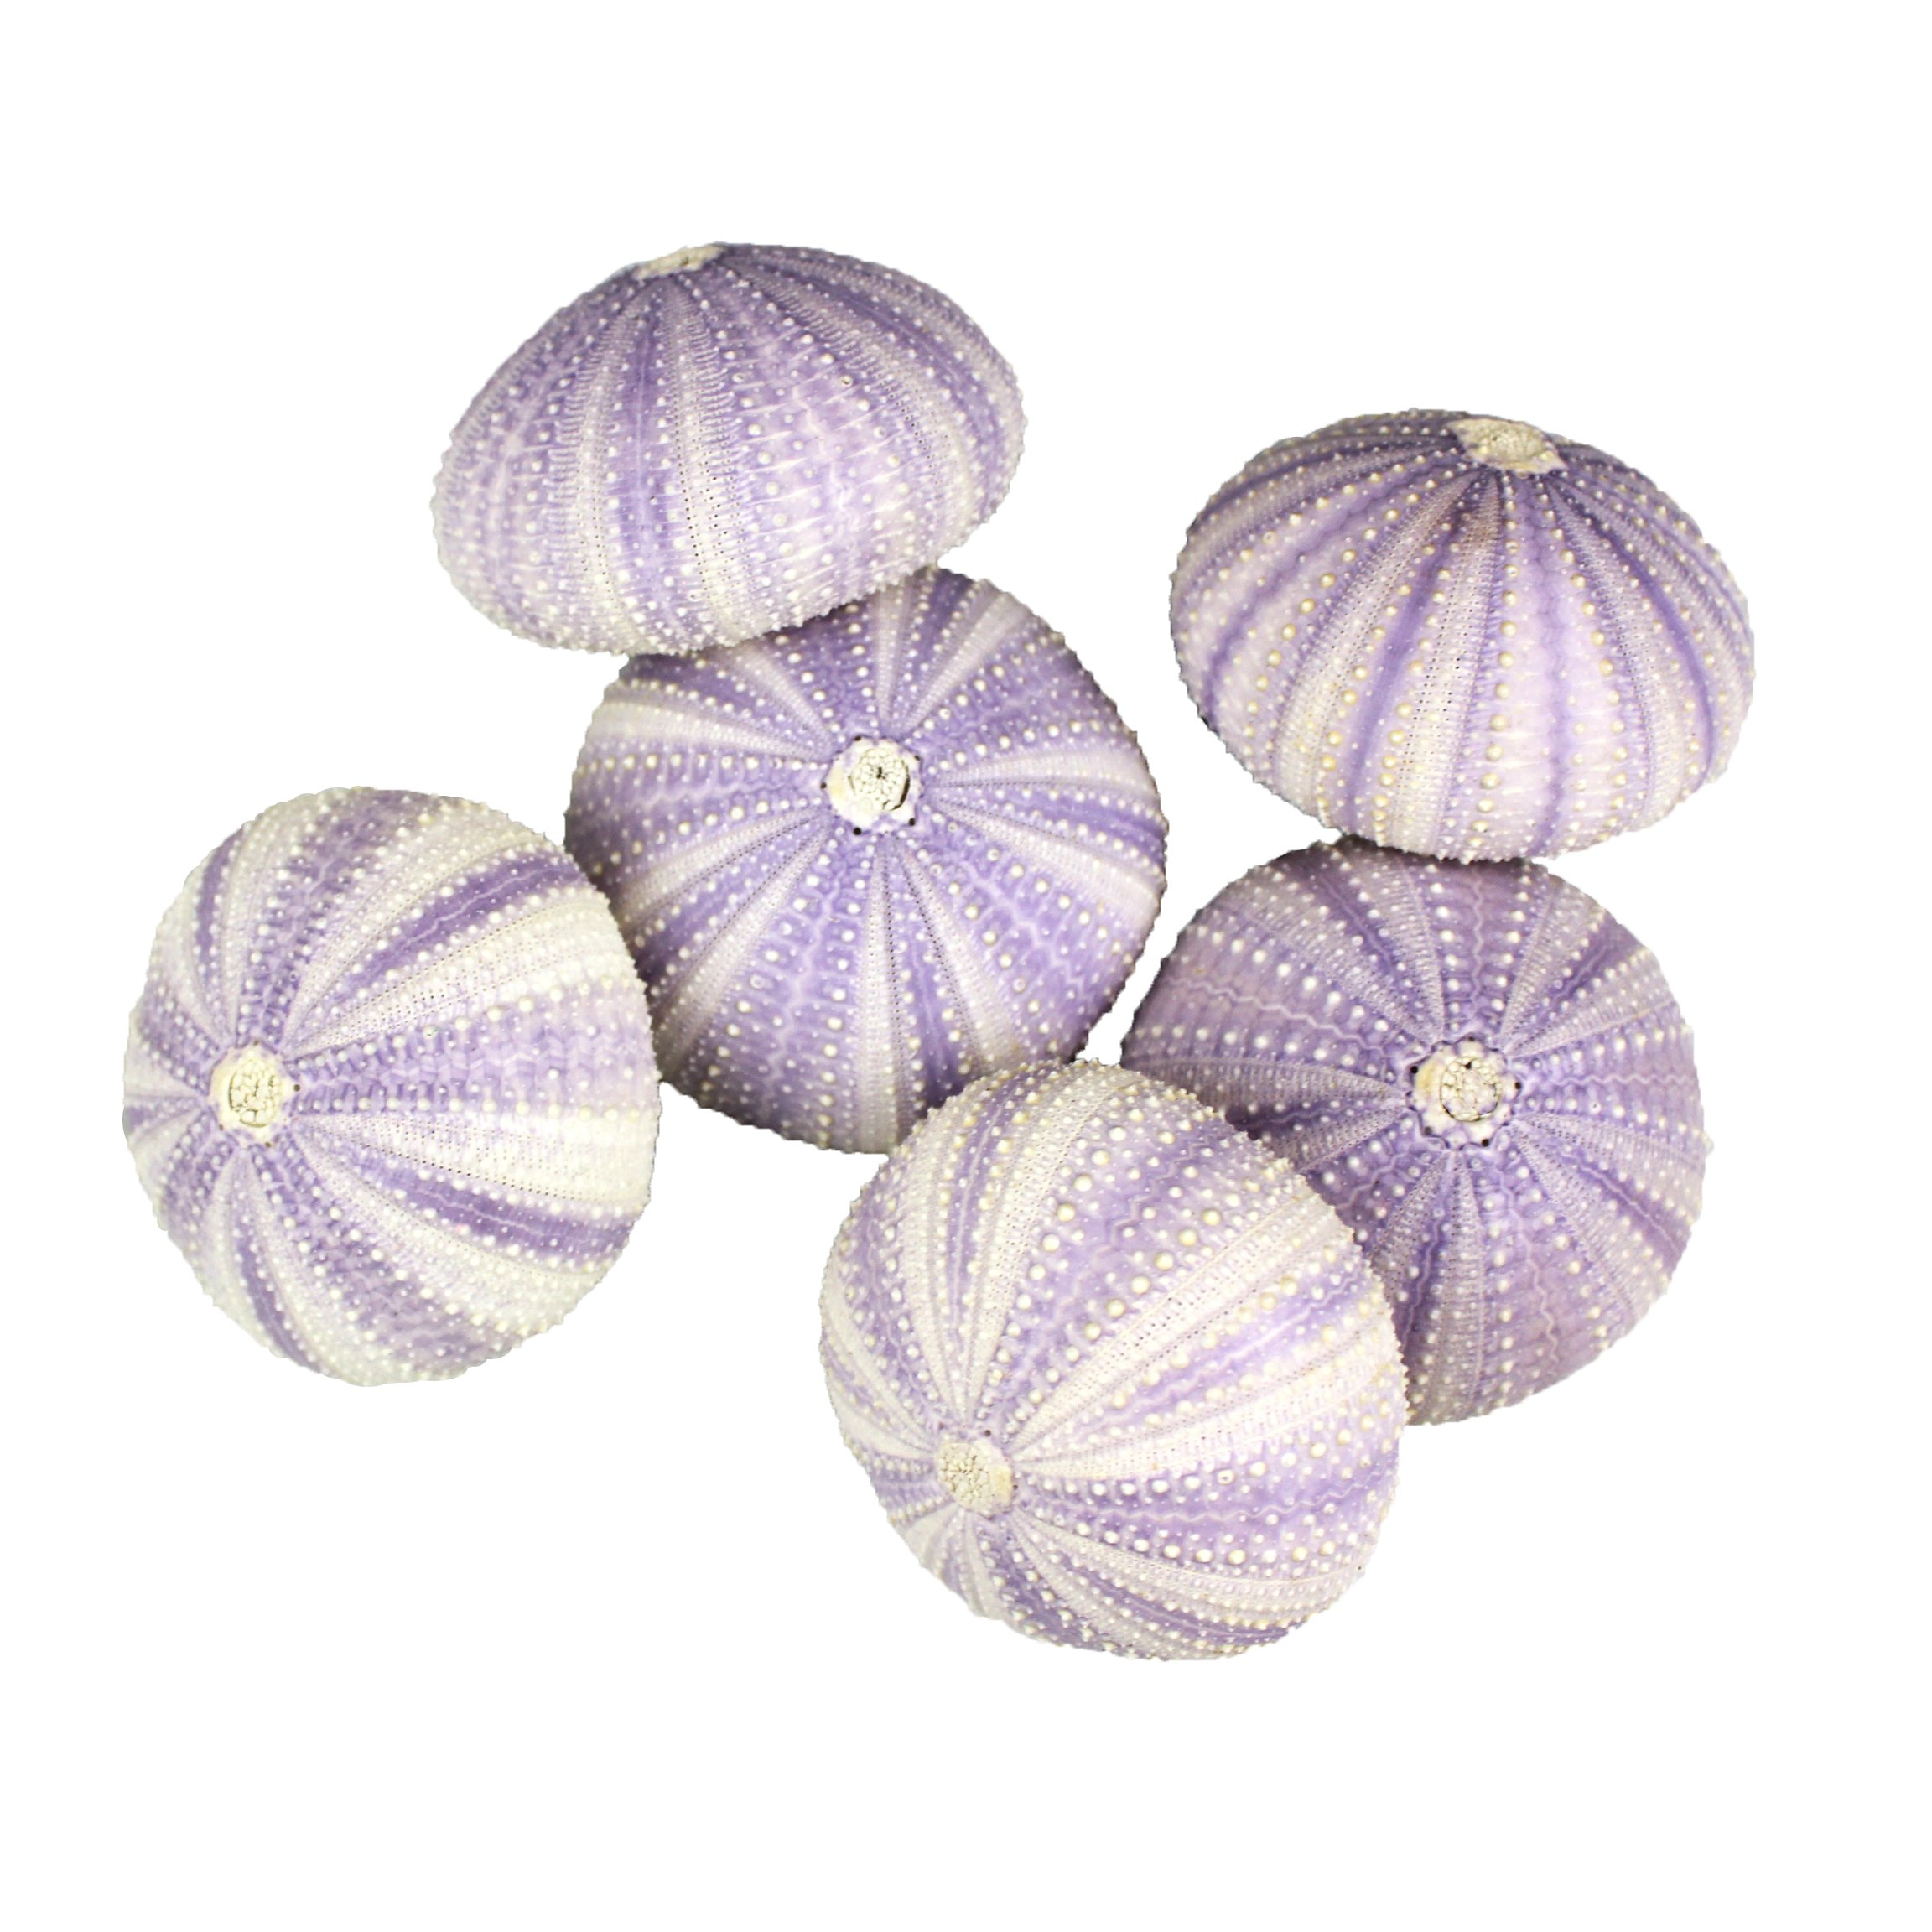 NW Wholesaler - Natural Sea Urchin Shells for Home Decor, Beach Decor, Terrariums, Air Plants, Arts & Crafts (Bundle of 6, Purple)